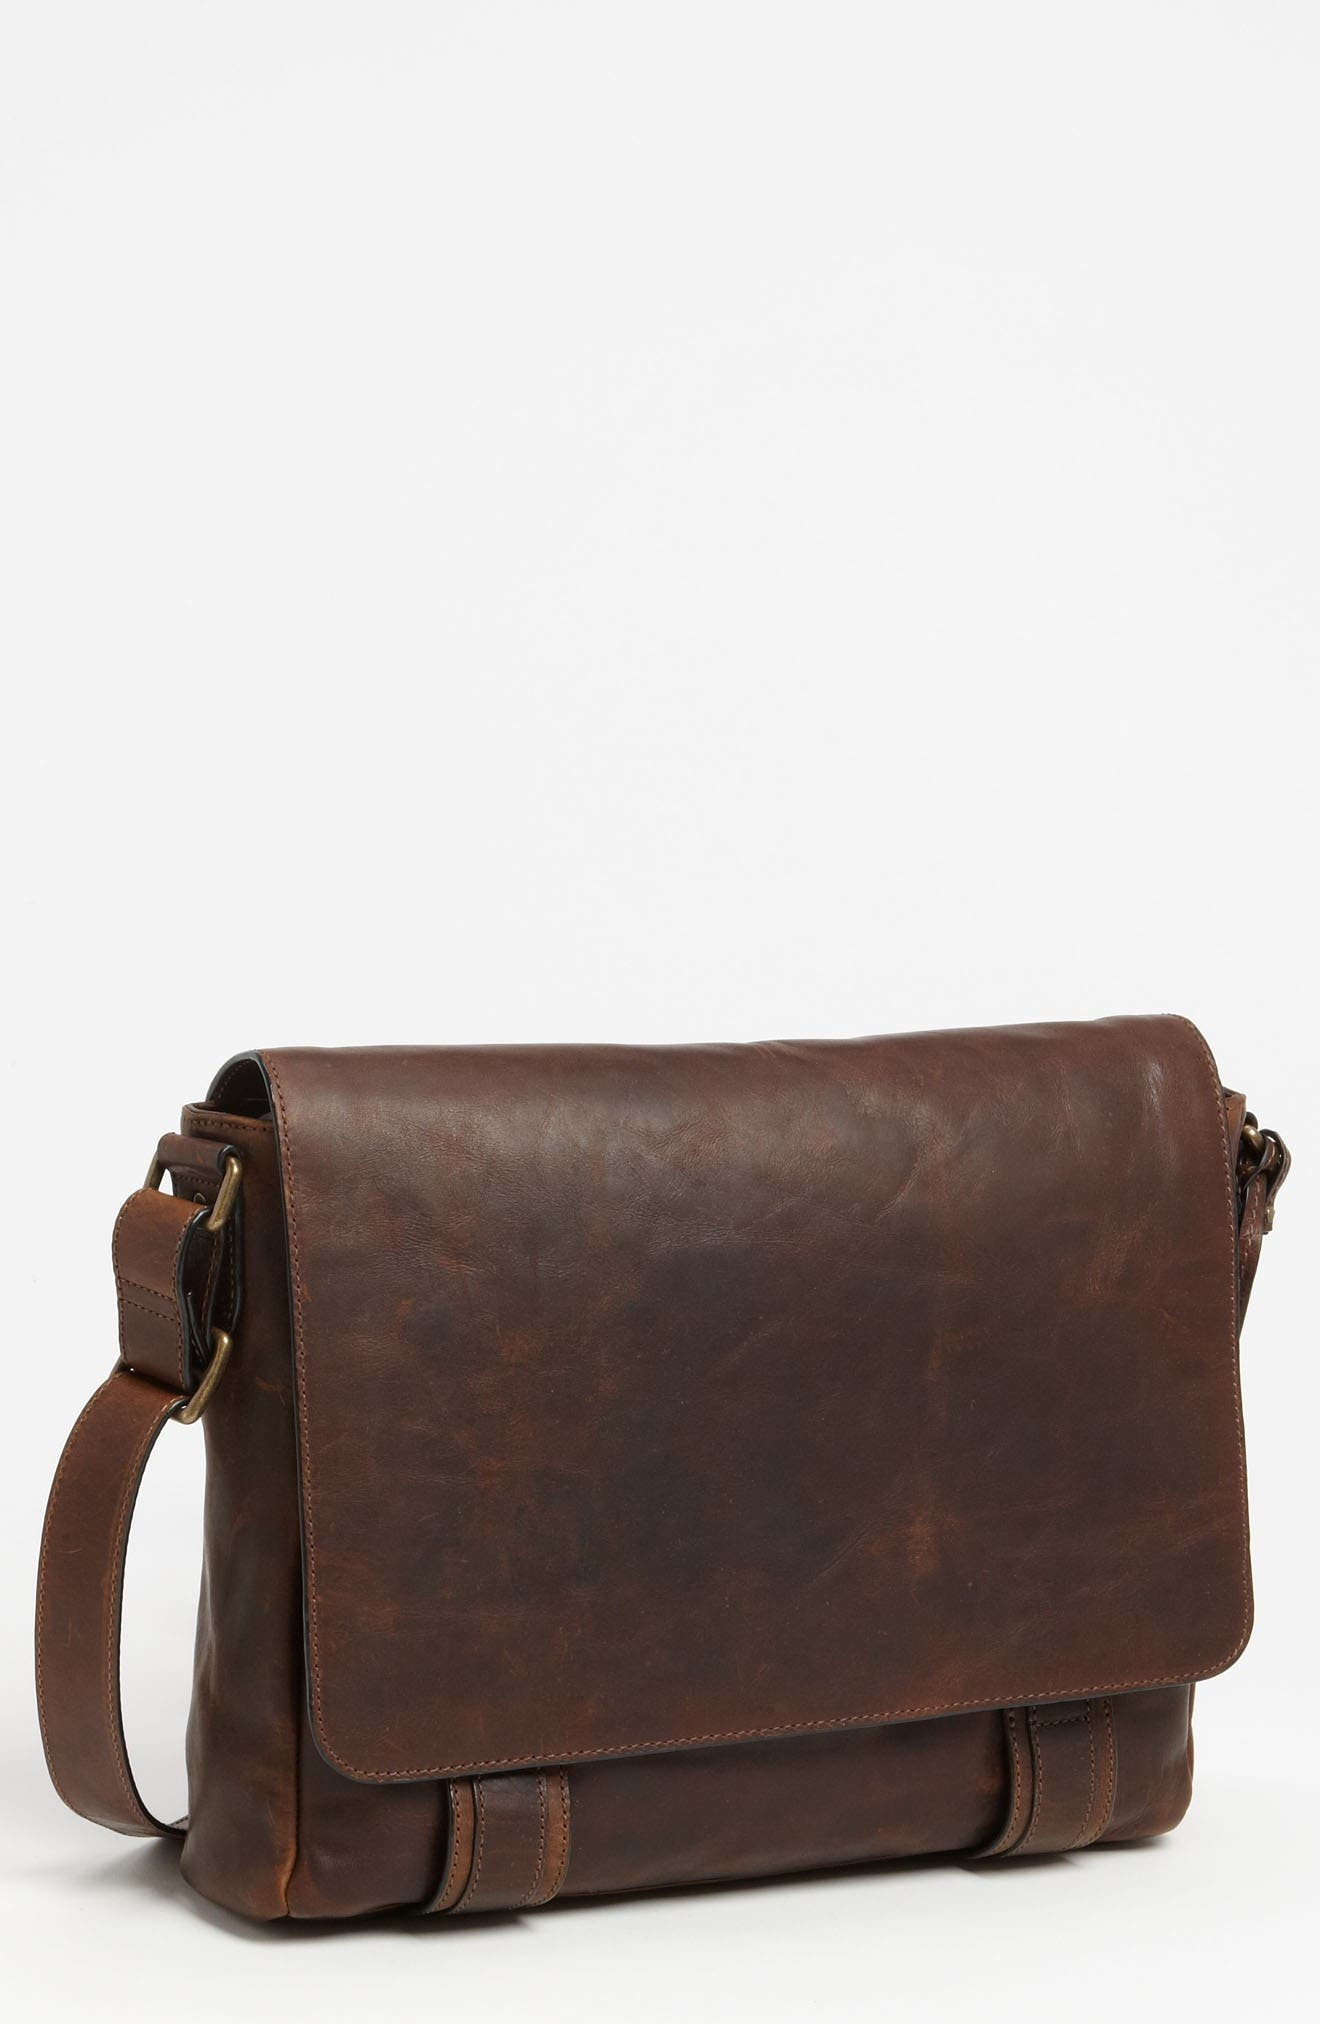 'Logan' Messenger Bag,                         Main,                         color, Antique Dark Brown